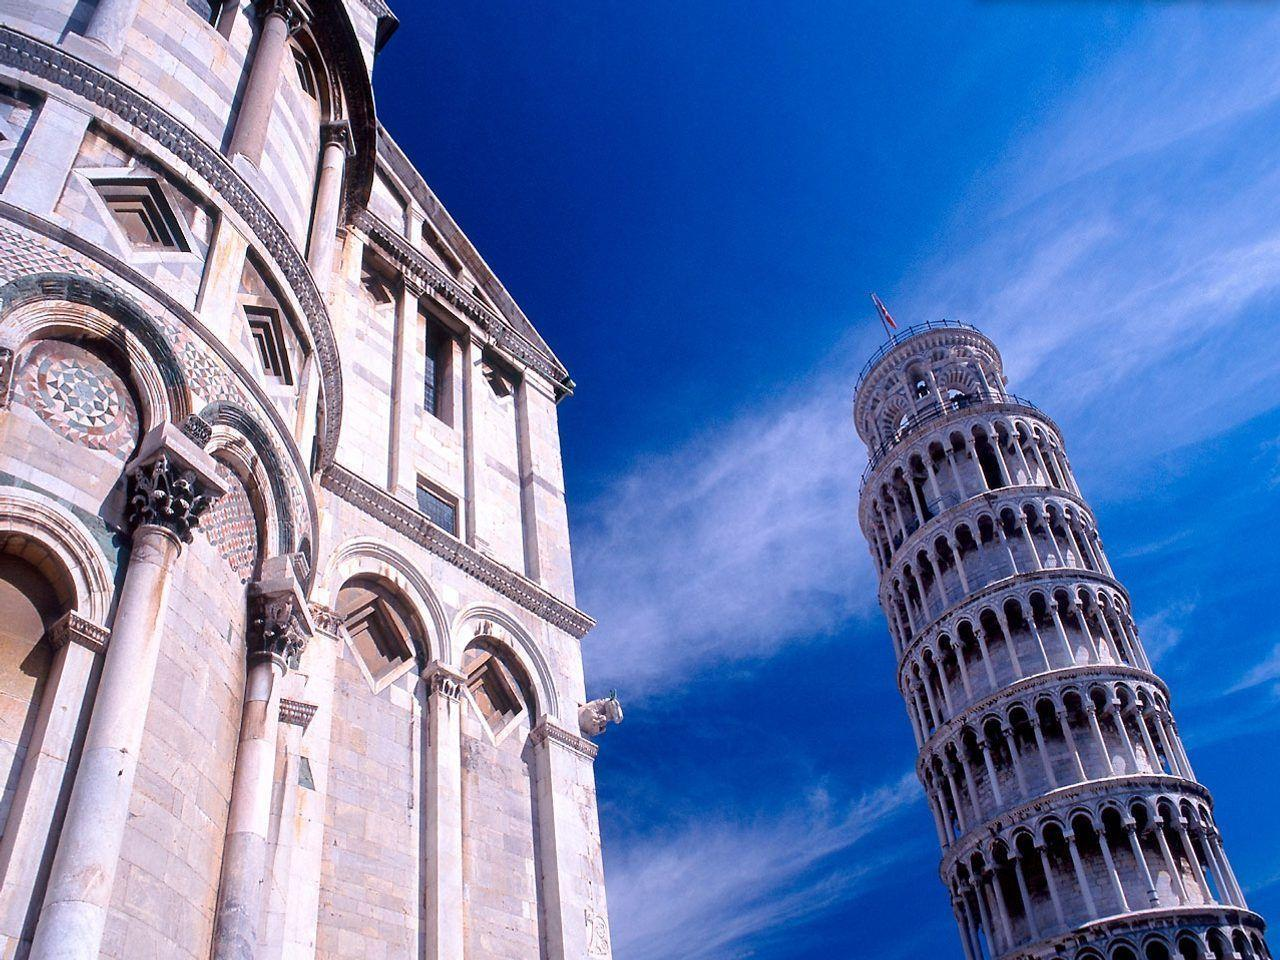 Leaning Tower of Pisa Italy Wallpaper | Travels Wallpapers Gallery ...